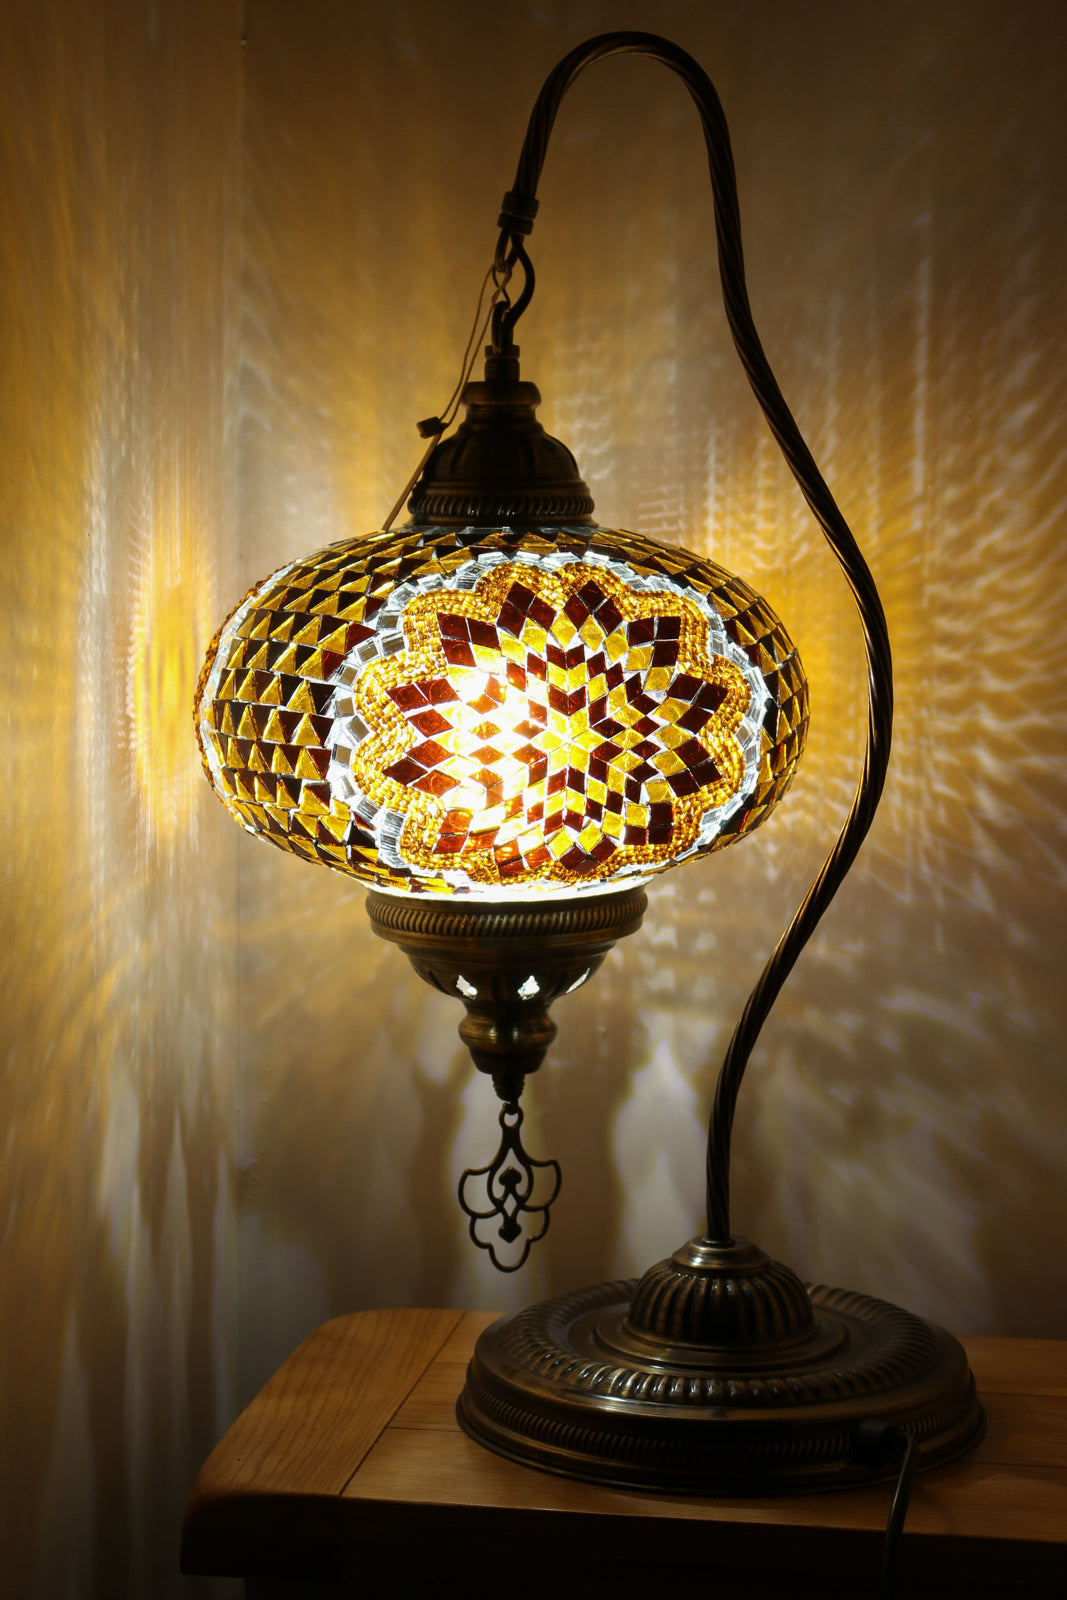 Hand Made Swan Neck Mosaic Table Lamp Size 5 in Gold Flower Design